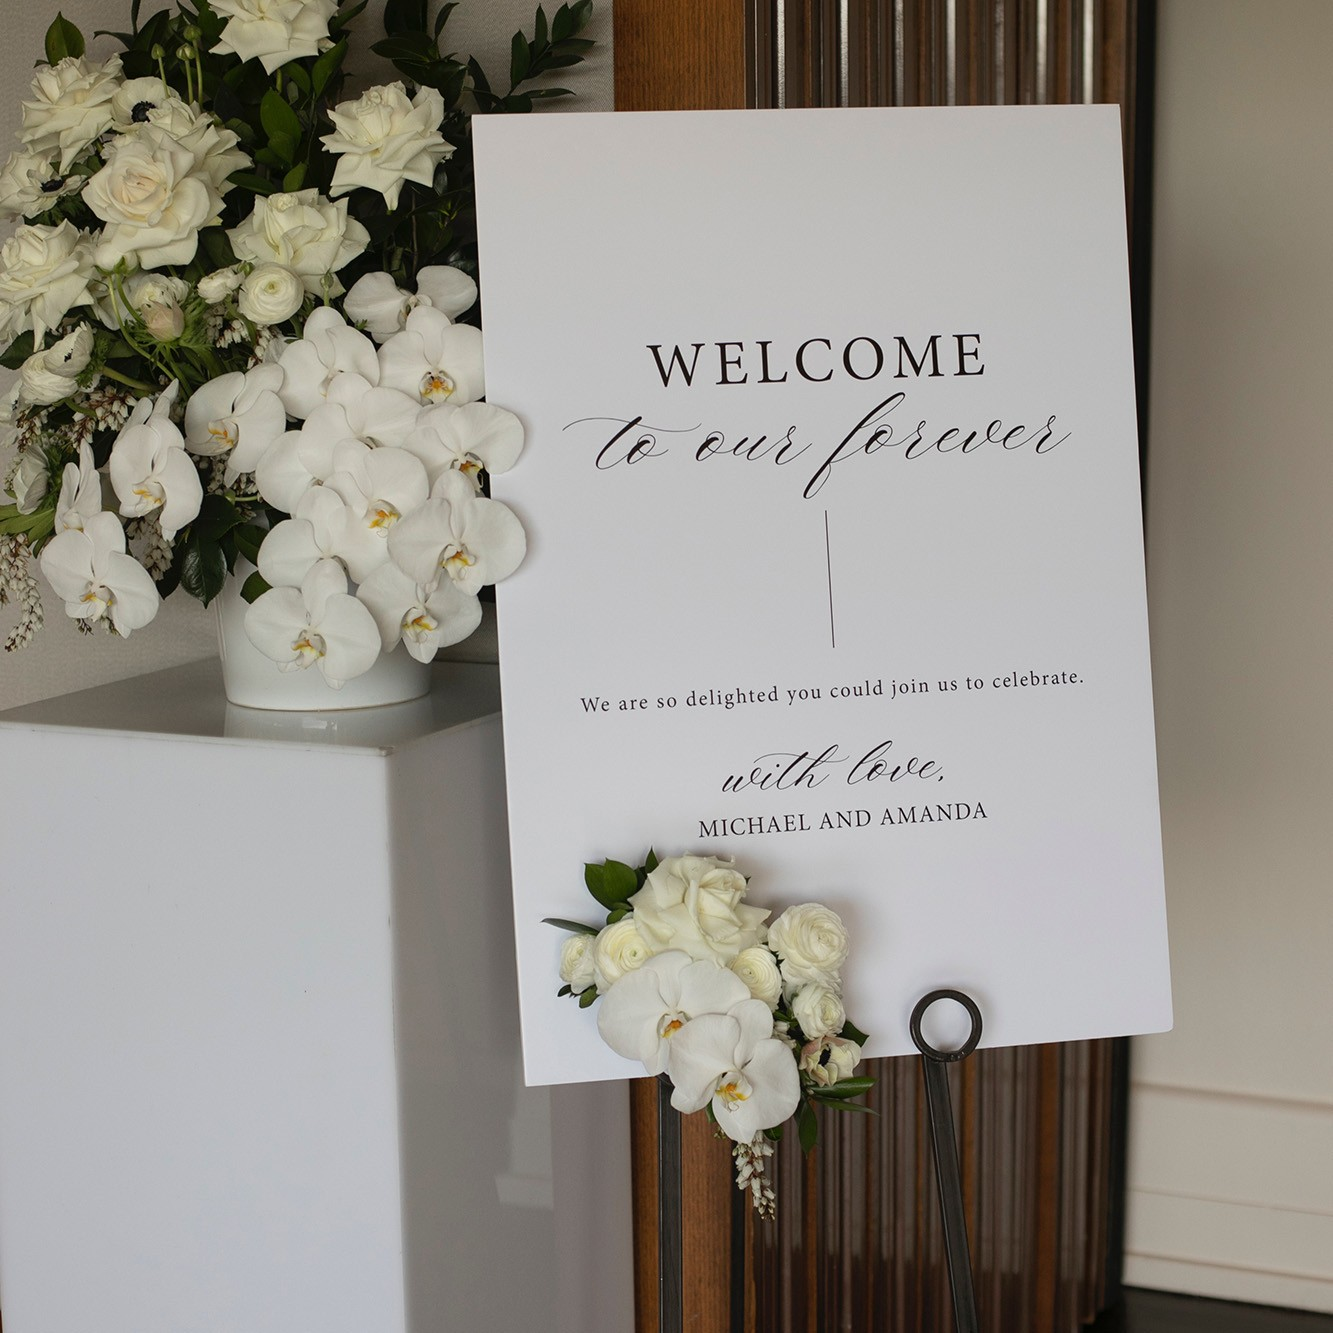 Reception Stationery - WELCOME SIGN | Amanda + Michael